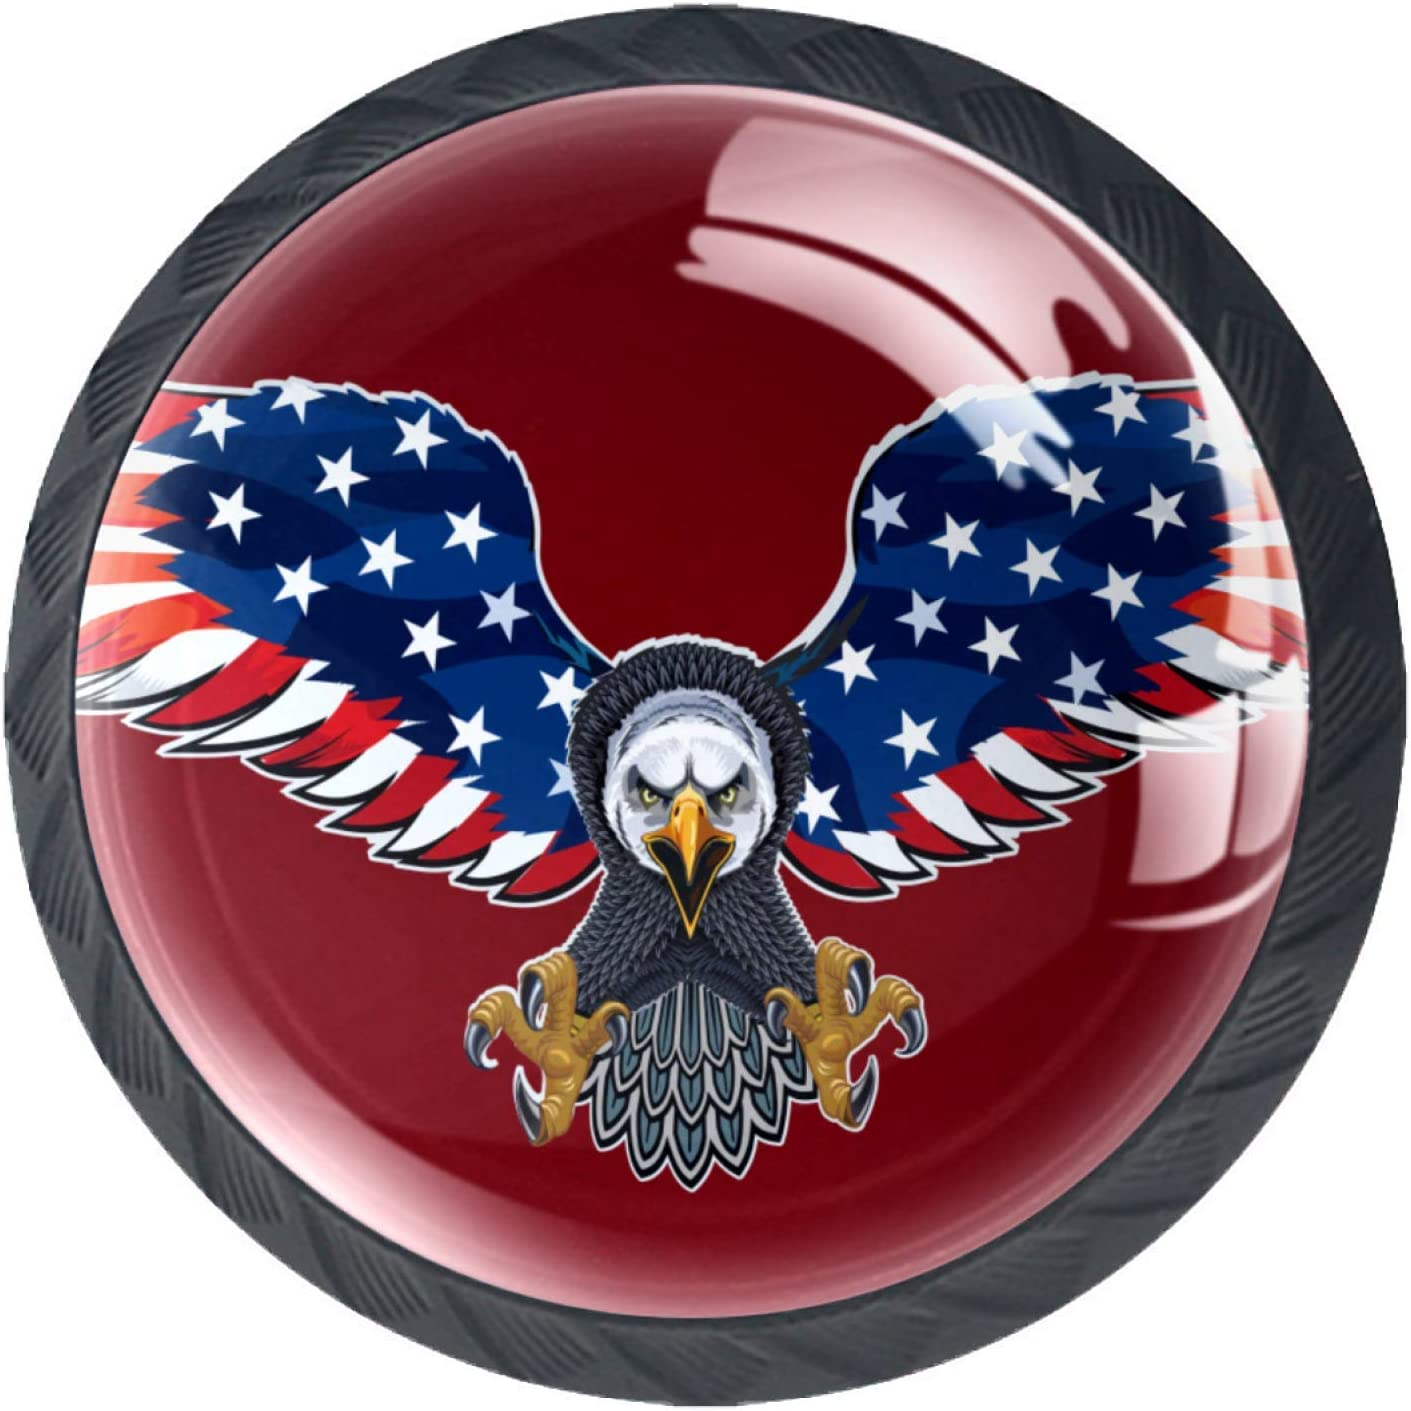 Kitchen Cabinet Knobs - American Eagle with USA Flags - 1.38 Inch Round Drawer Handles - 4 Pack of Kitchen Cabinet Hardware